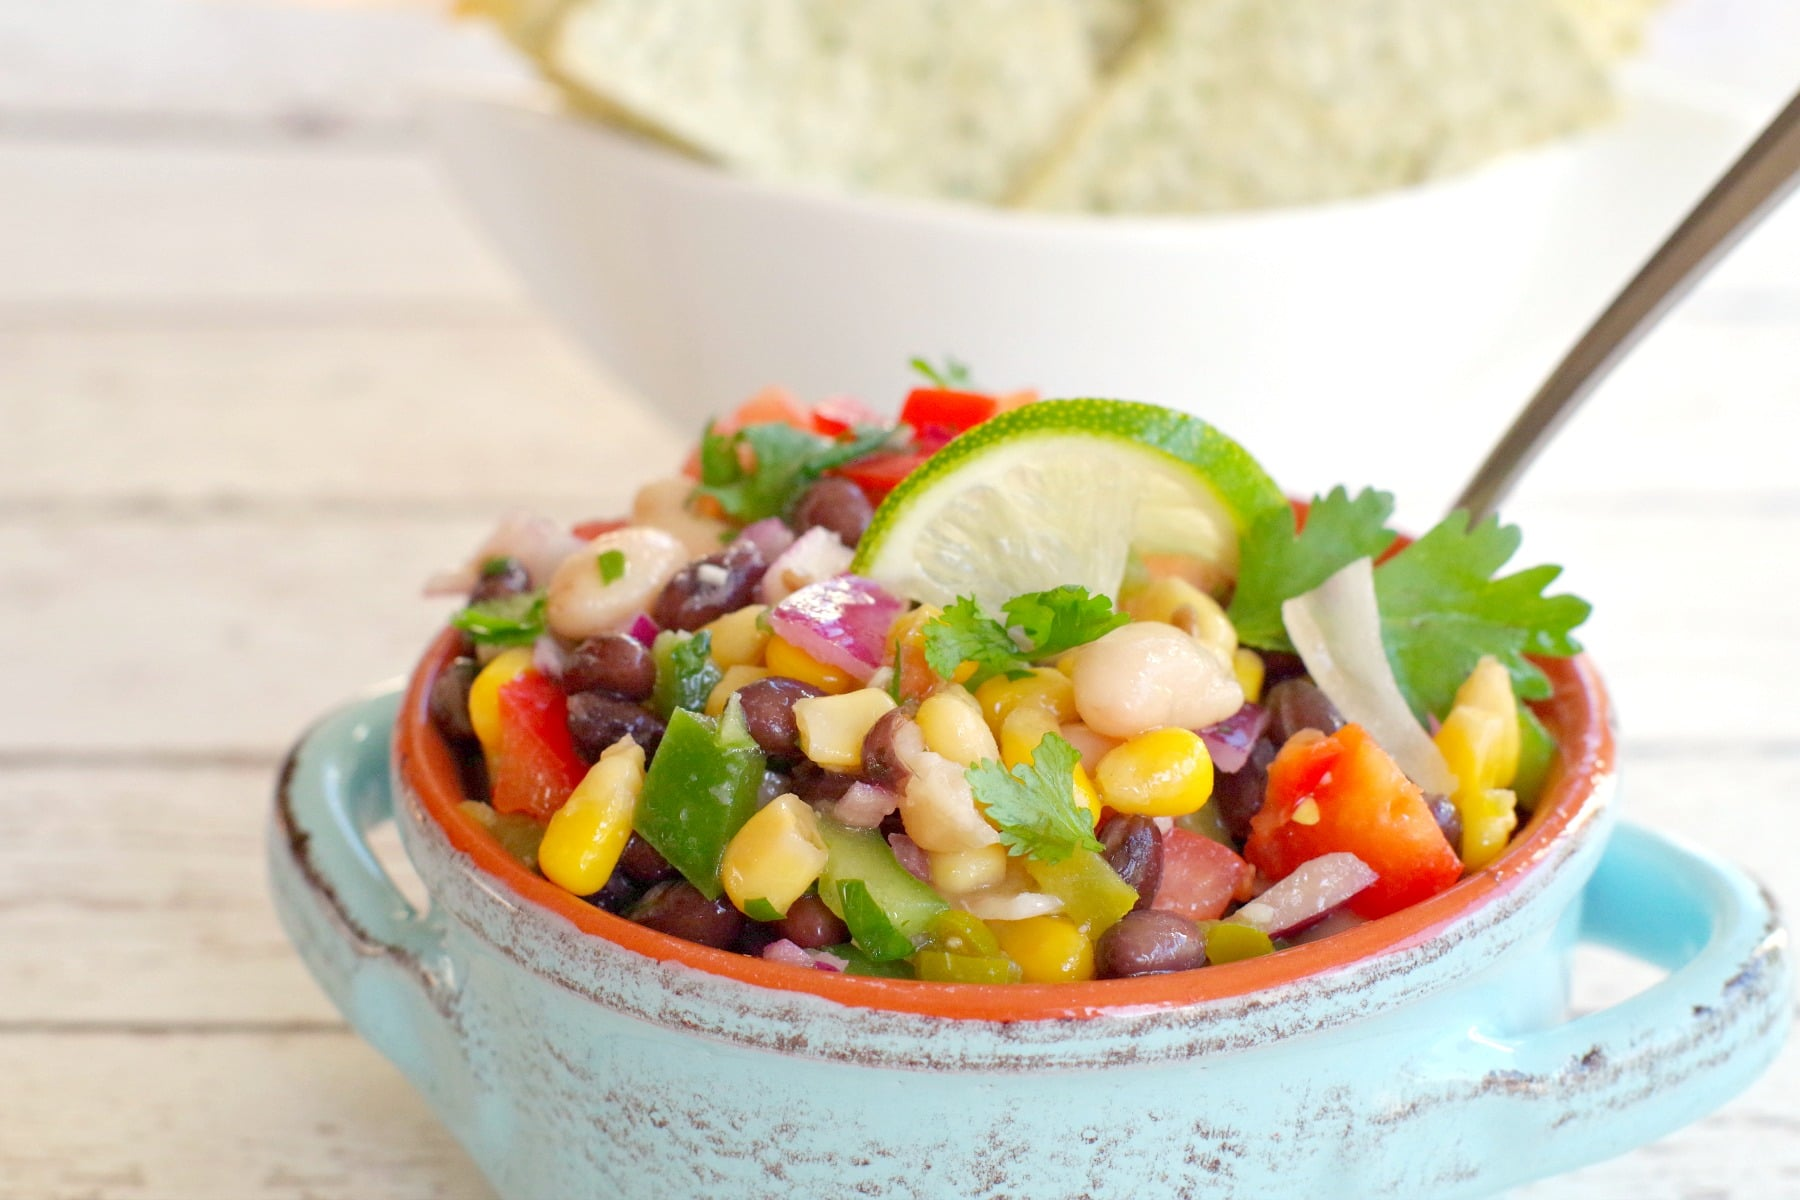 cowboy caviar in a blue bowl with tortilla chips in the background